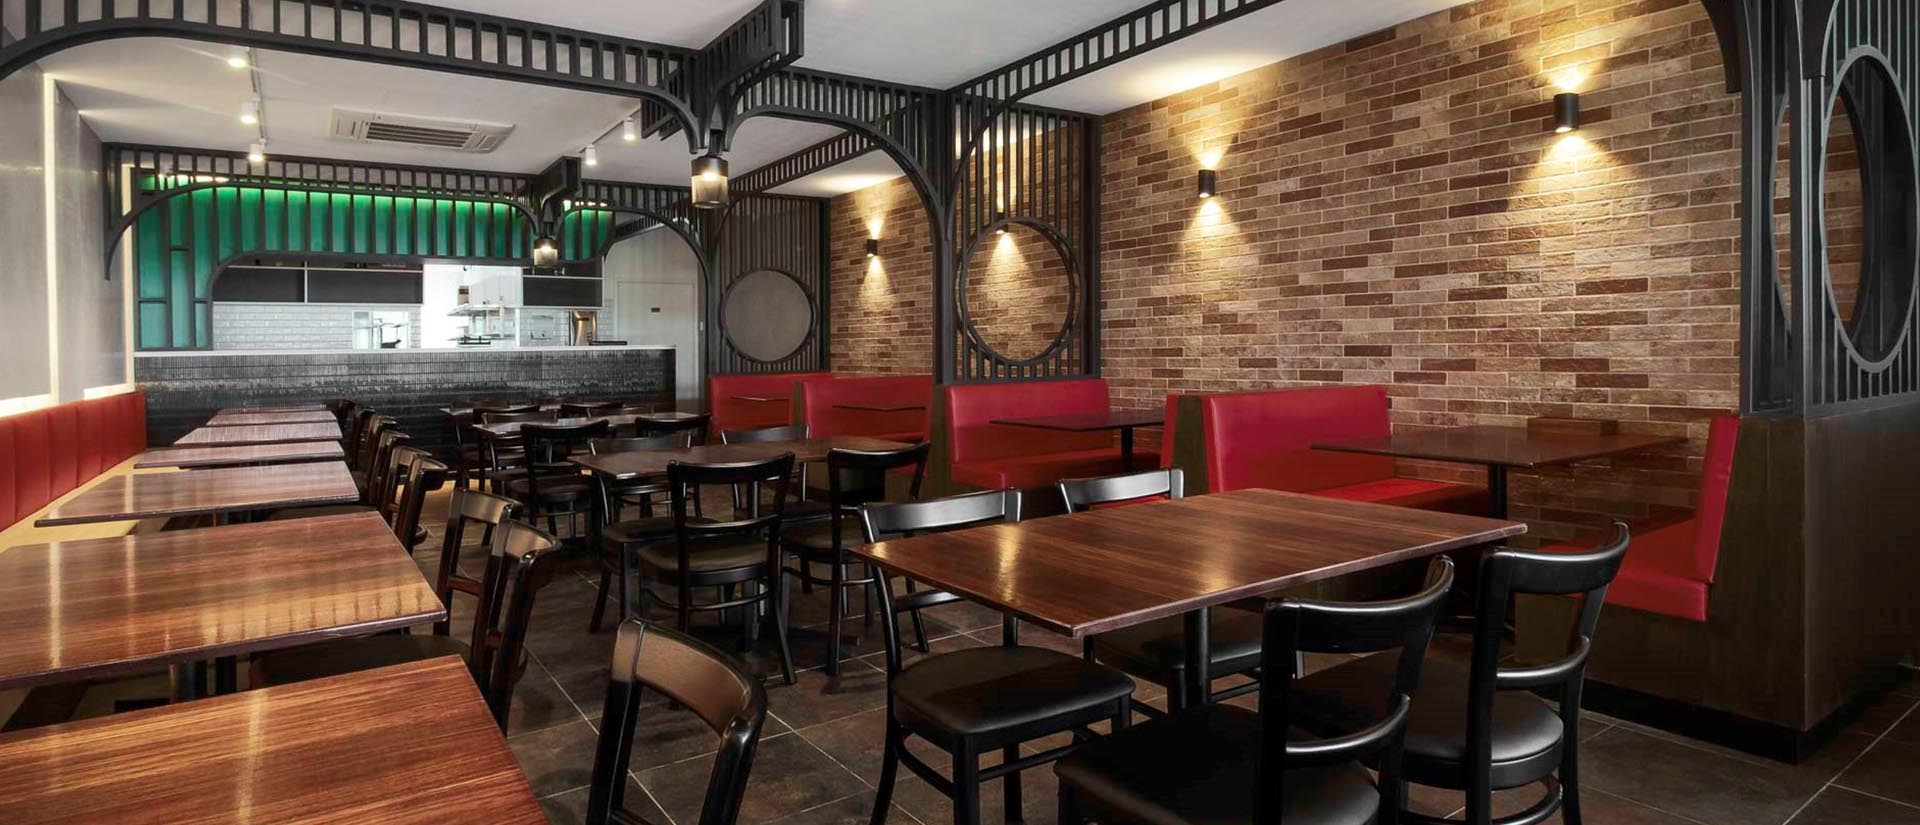 Projects-Restaurant_East Alley-3